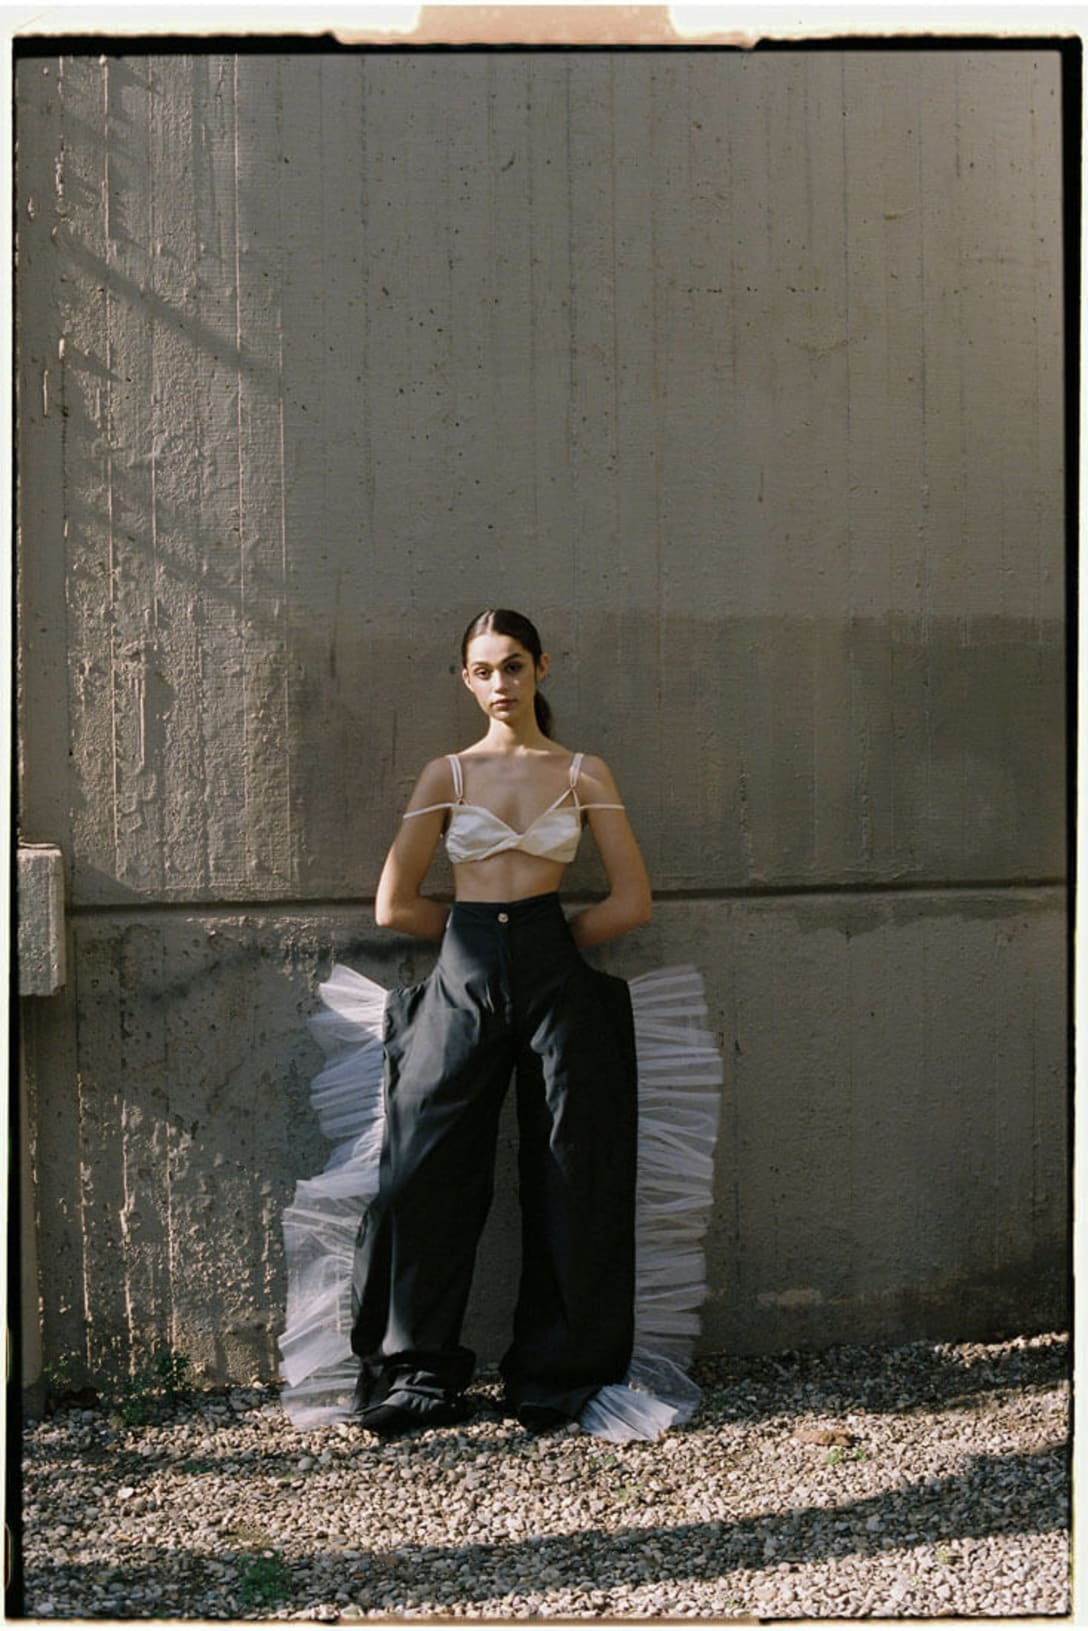 top by JACQUEMUS, trousers by PETER SPOSITO STUDIO